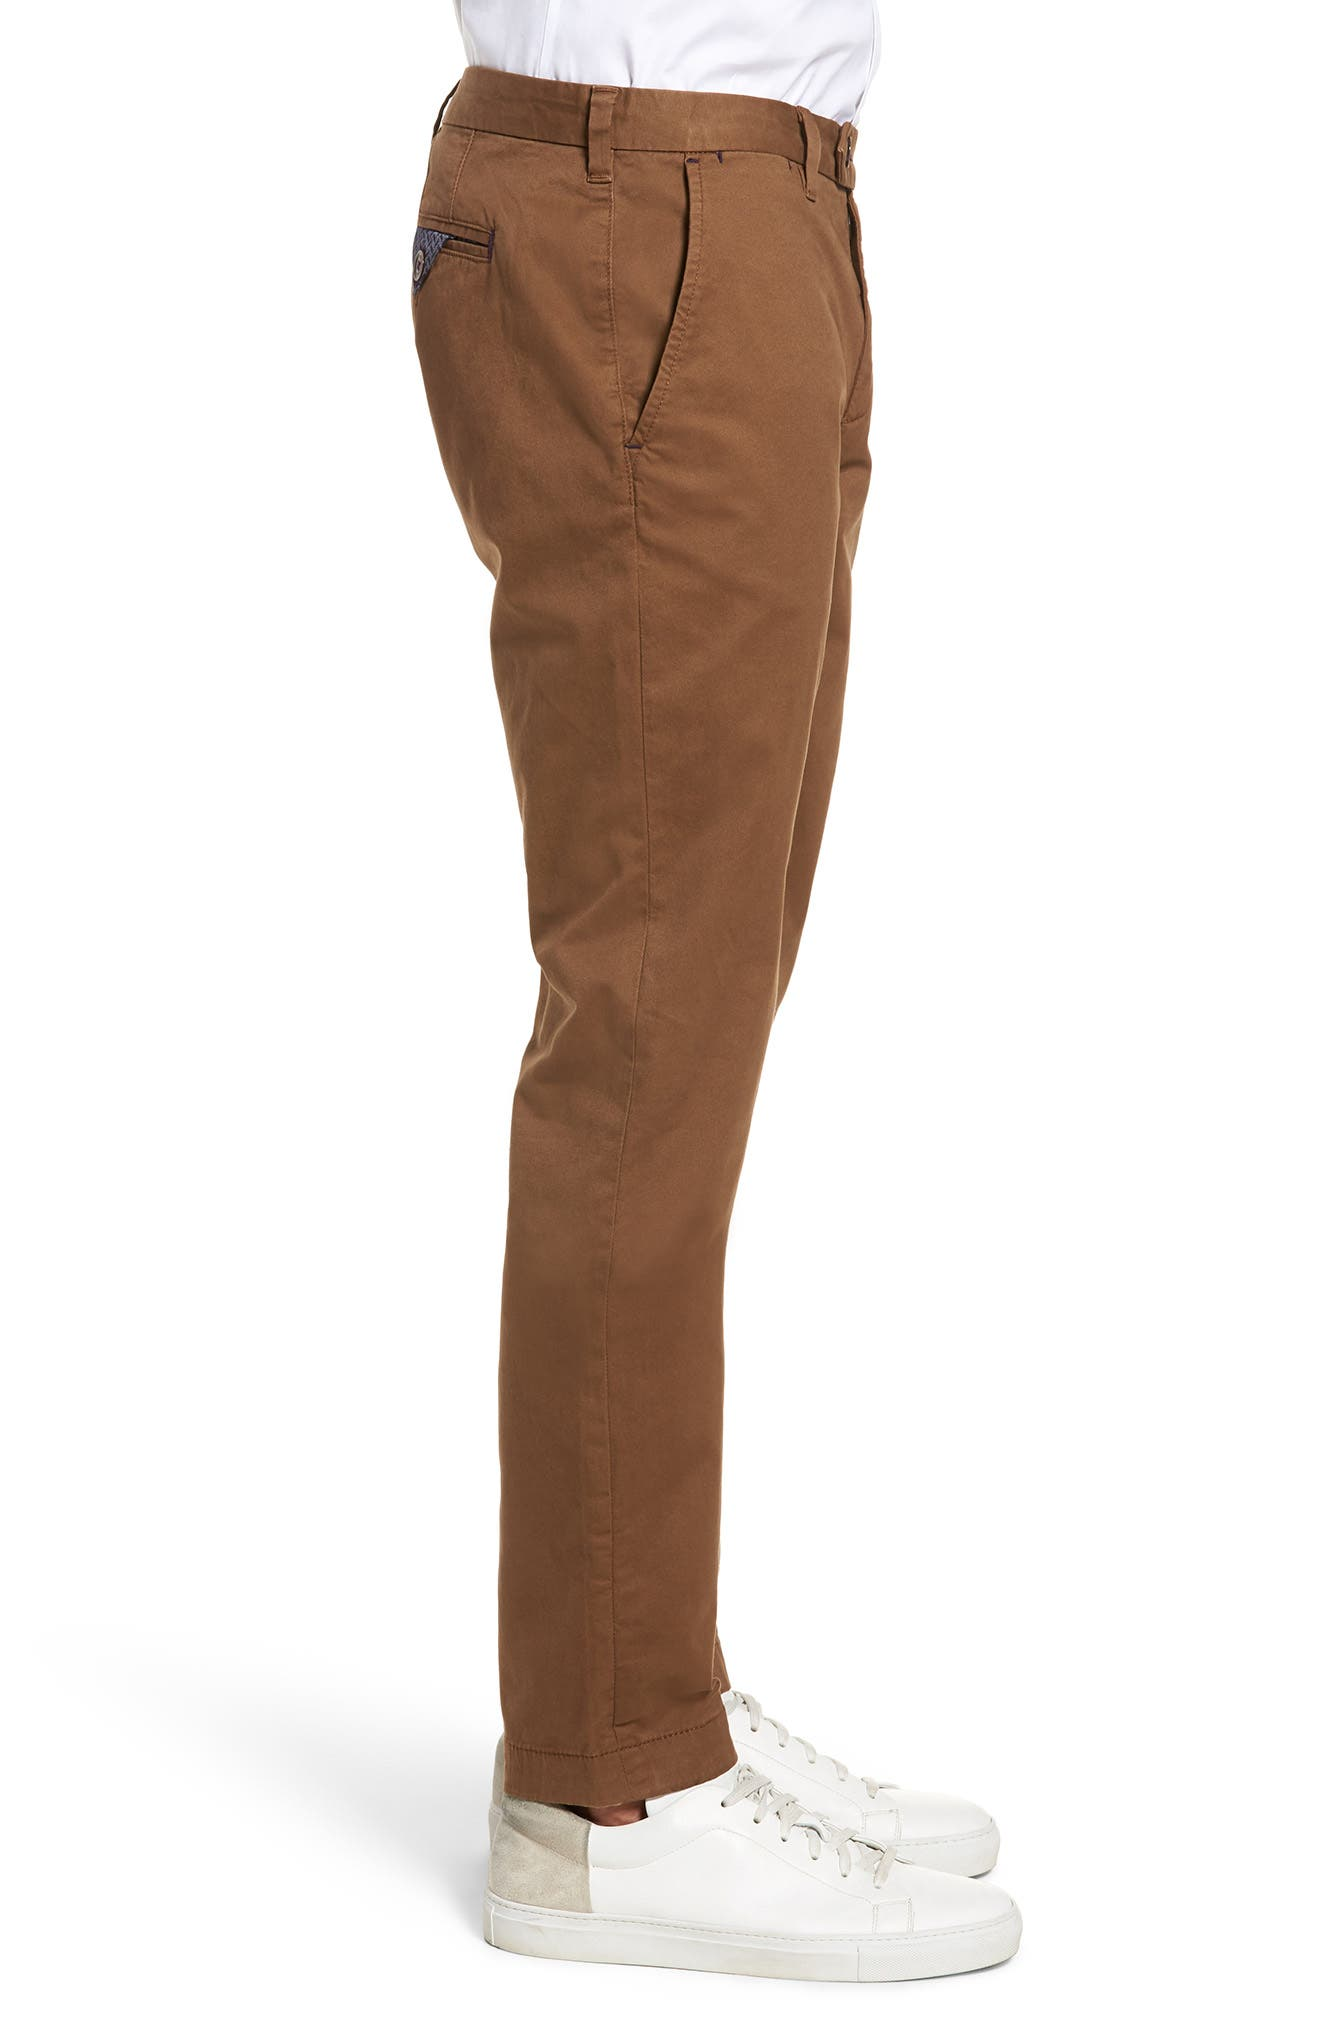 Proctt Flat Front Stretch Solid Cotton Pants,                             Alternate thumbnail 3, color,                             TAN